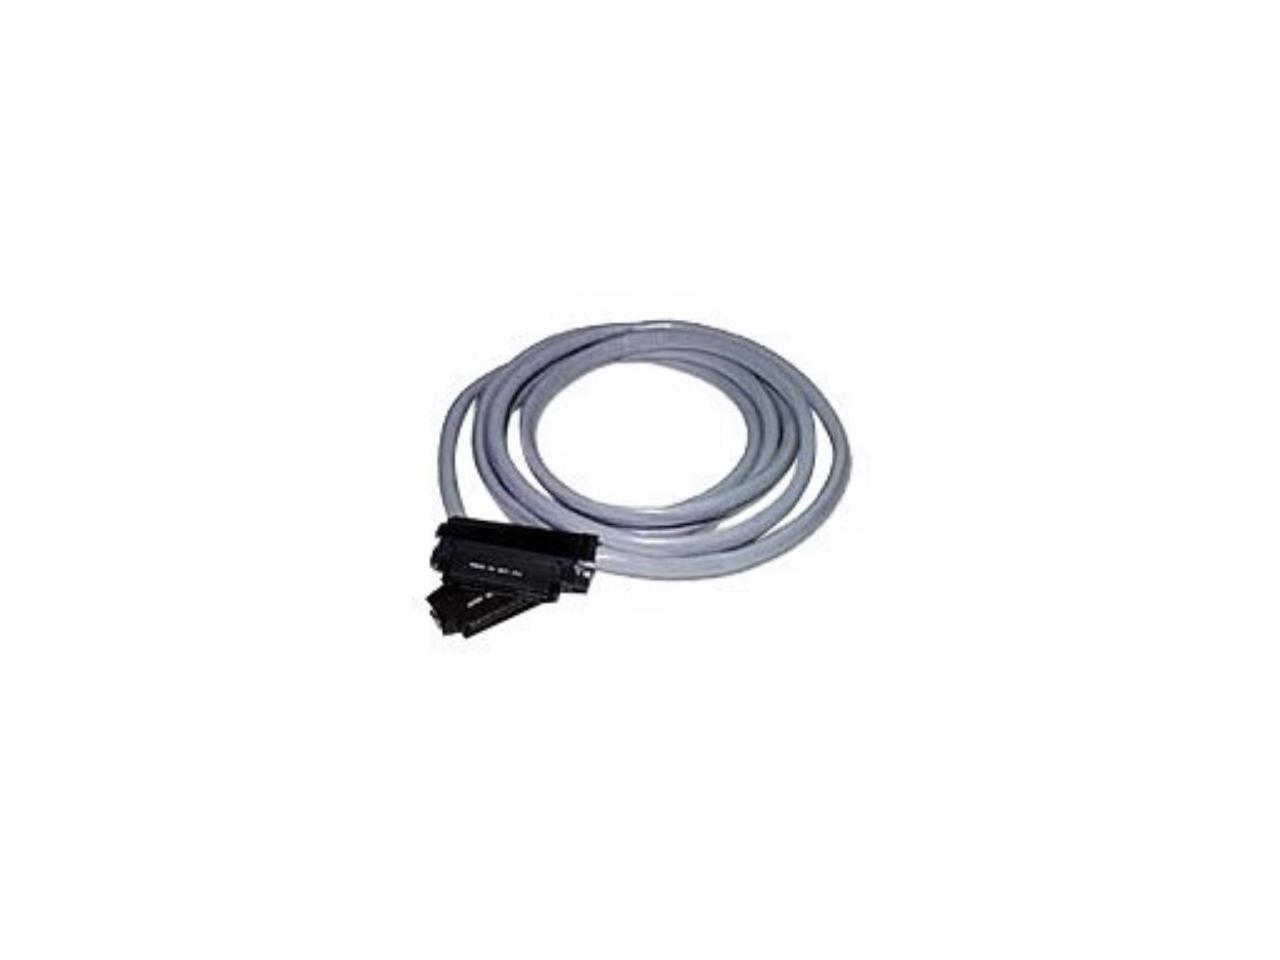 C2g Cat3 25 Pair Telco50 Trunk Cable Gray 5 Feet